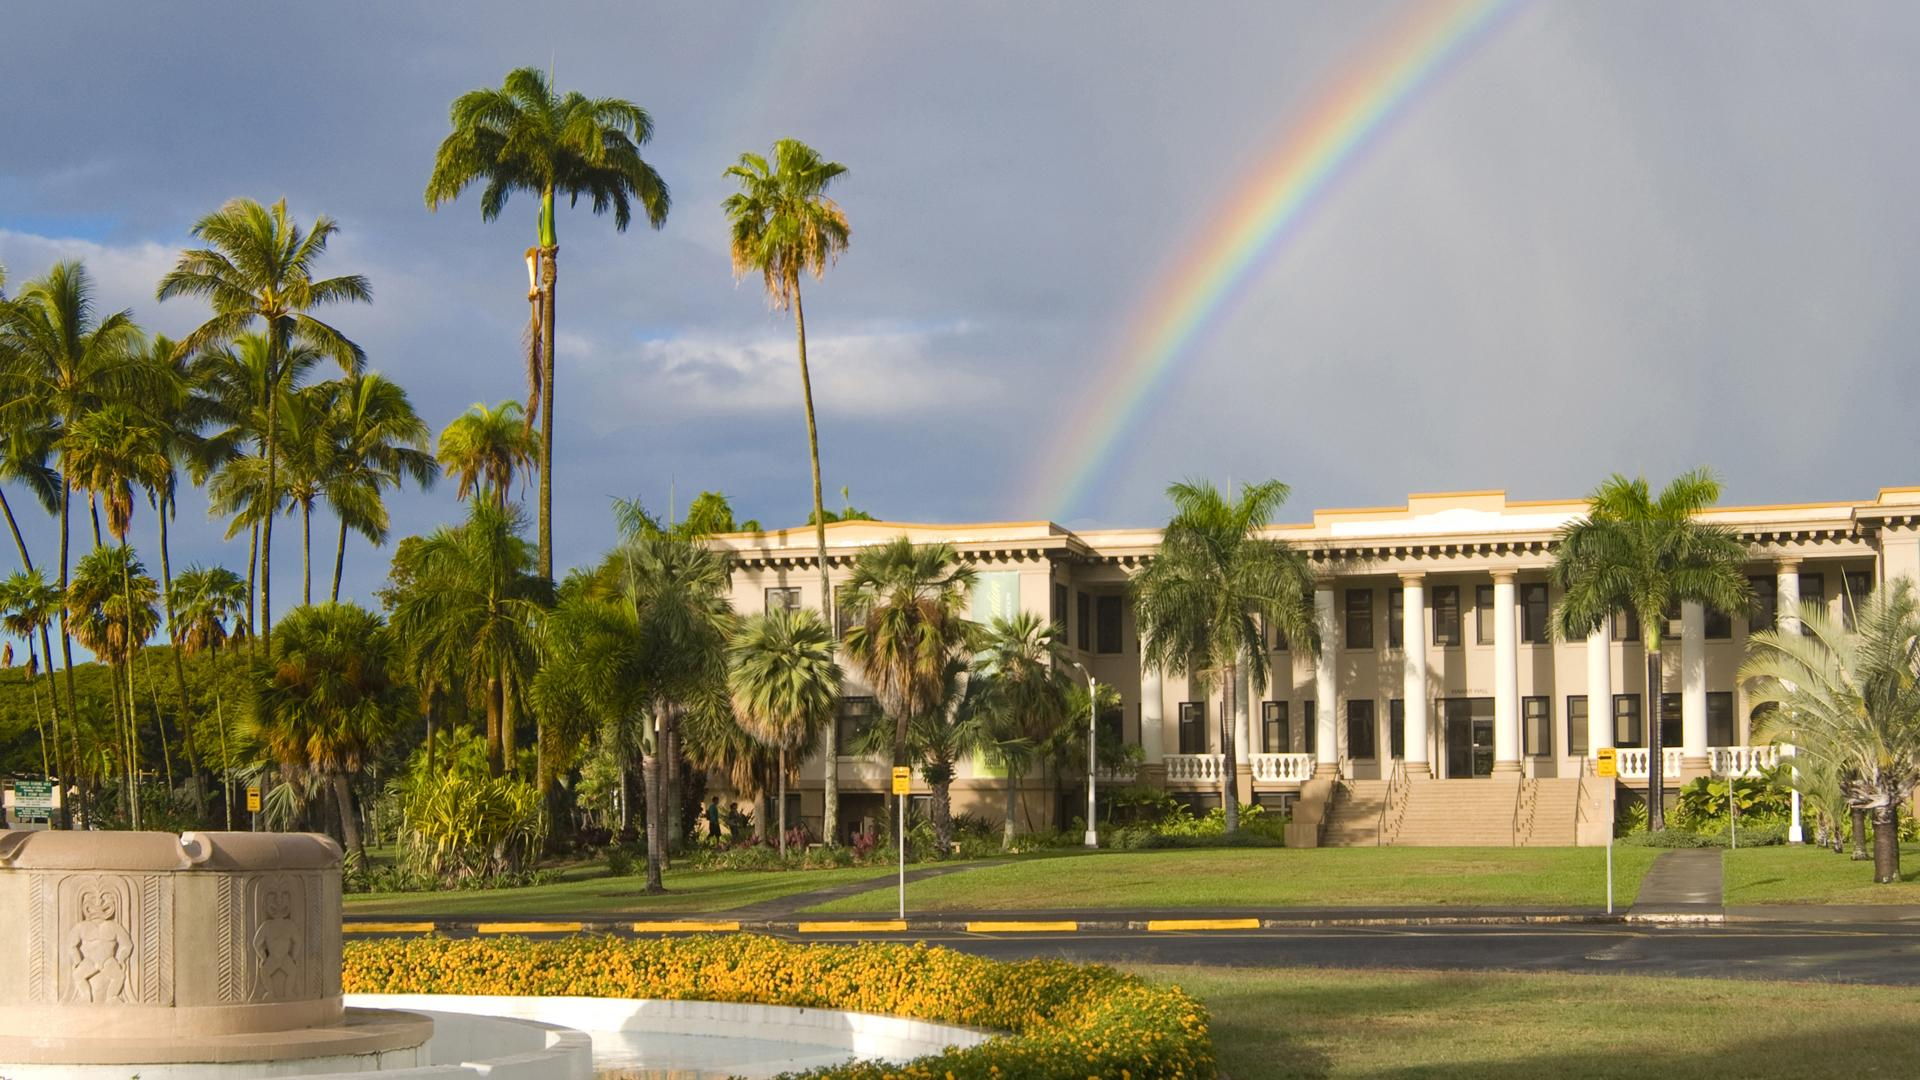 Enrollment Across UH System Increases for First Time in 10 Years, Led by  Mānoa